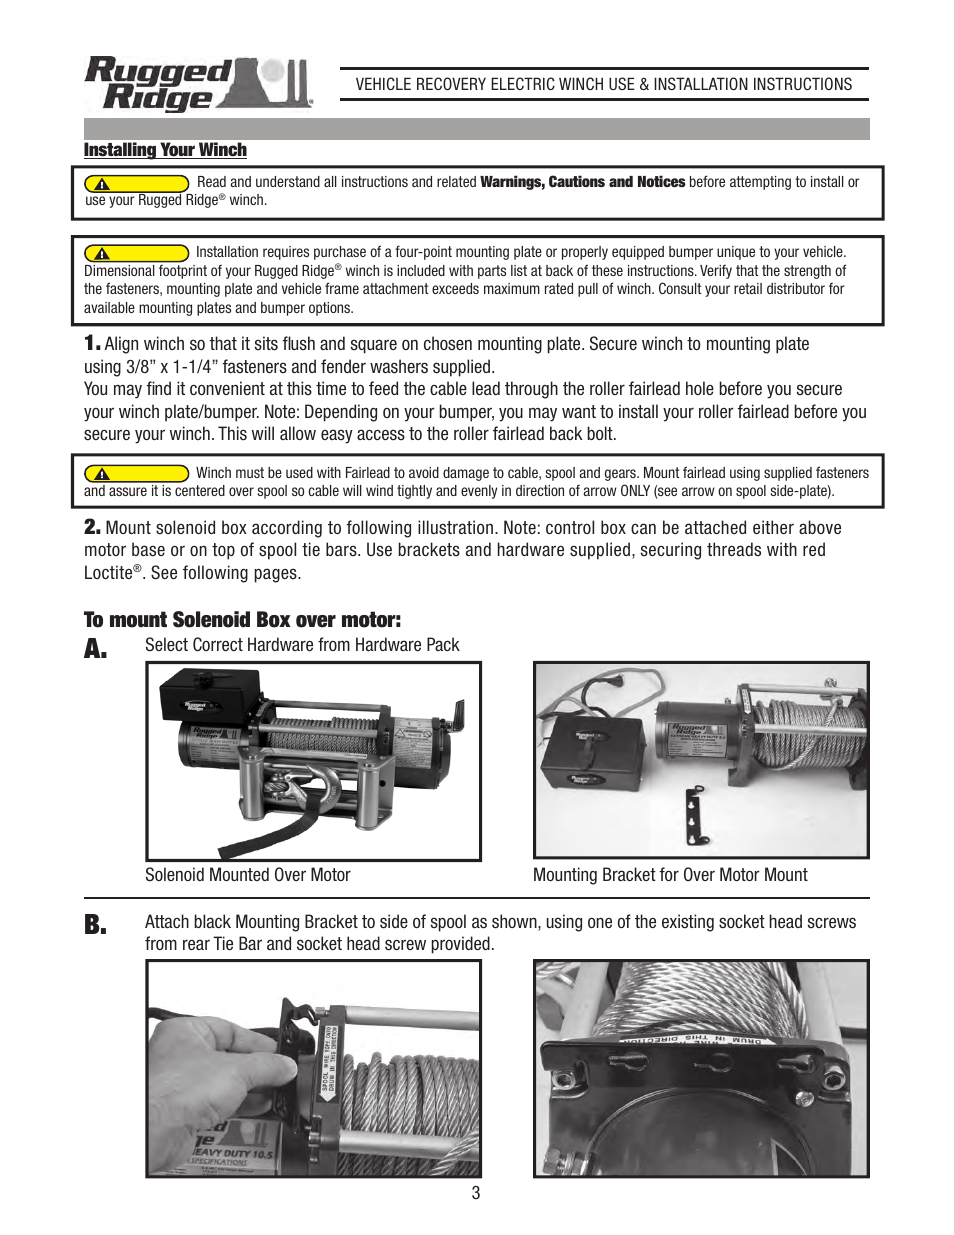 Rugged Ridge Heavy Duty 8500 Lbs Off Road Winch User Manual Page 4 Solenoid Wiring Diagram 3 14